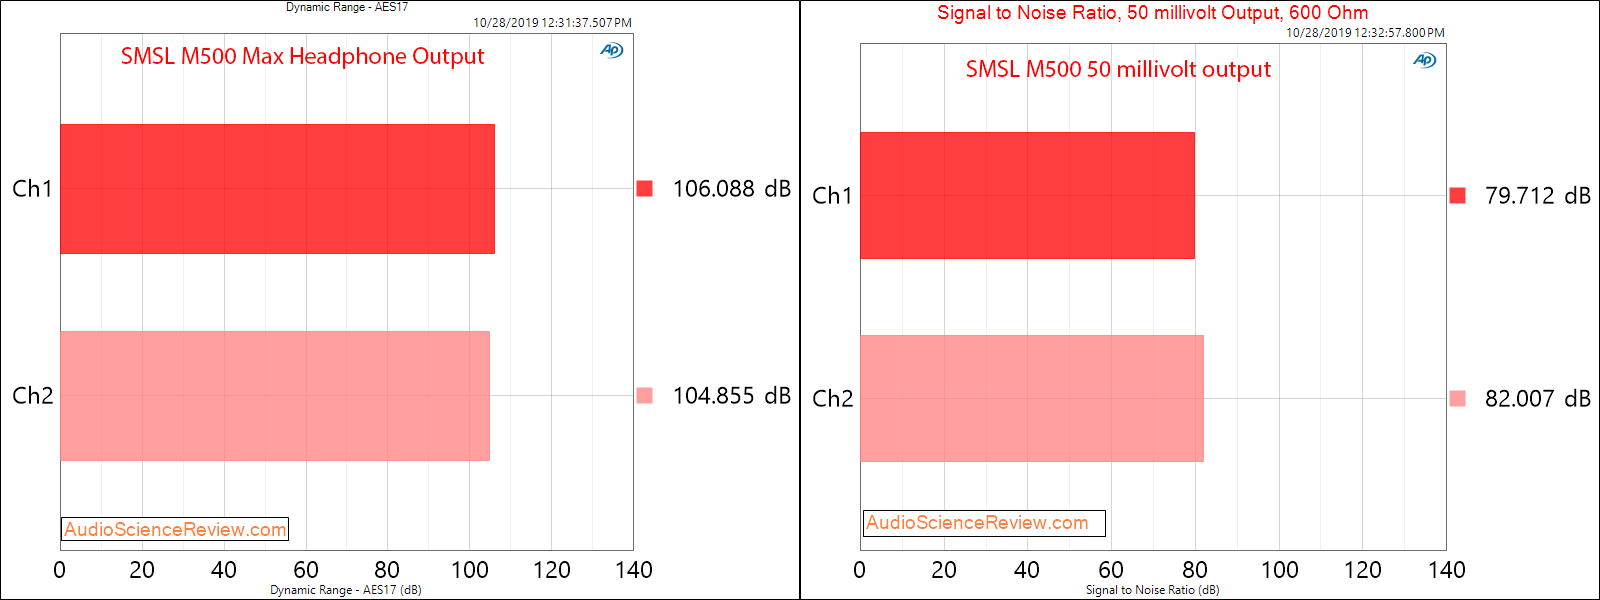 SMSL M500 DAC and Headphone Amplifier Headphone Signal to Noise Ratio Audio Measurements.png